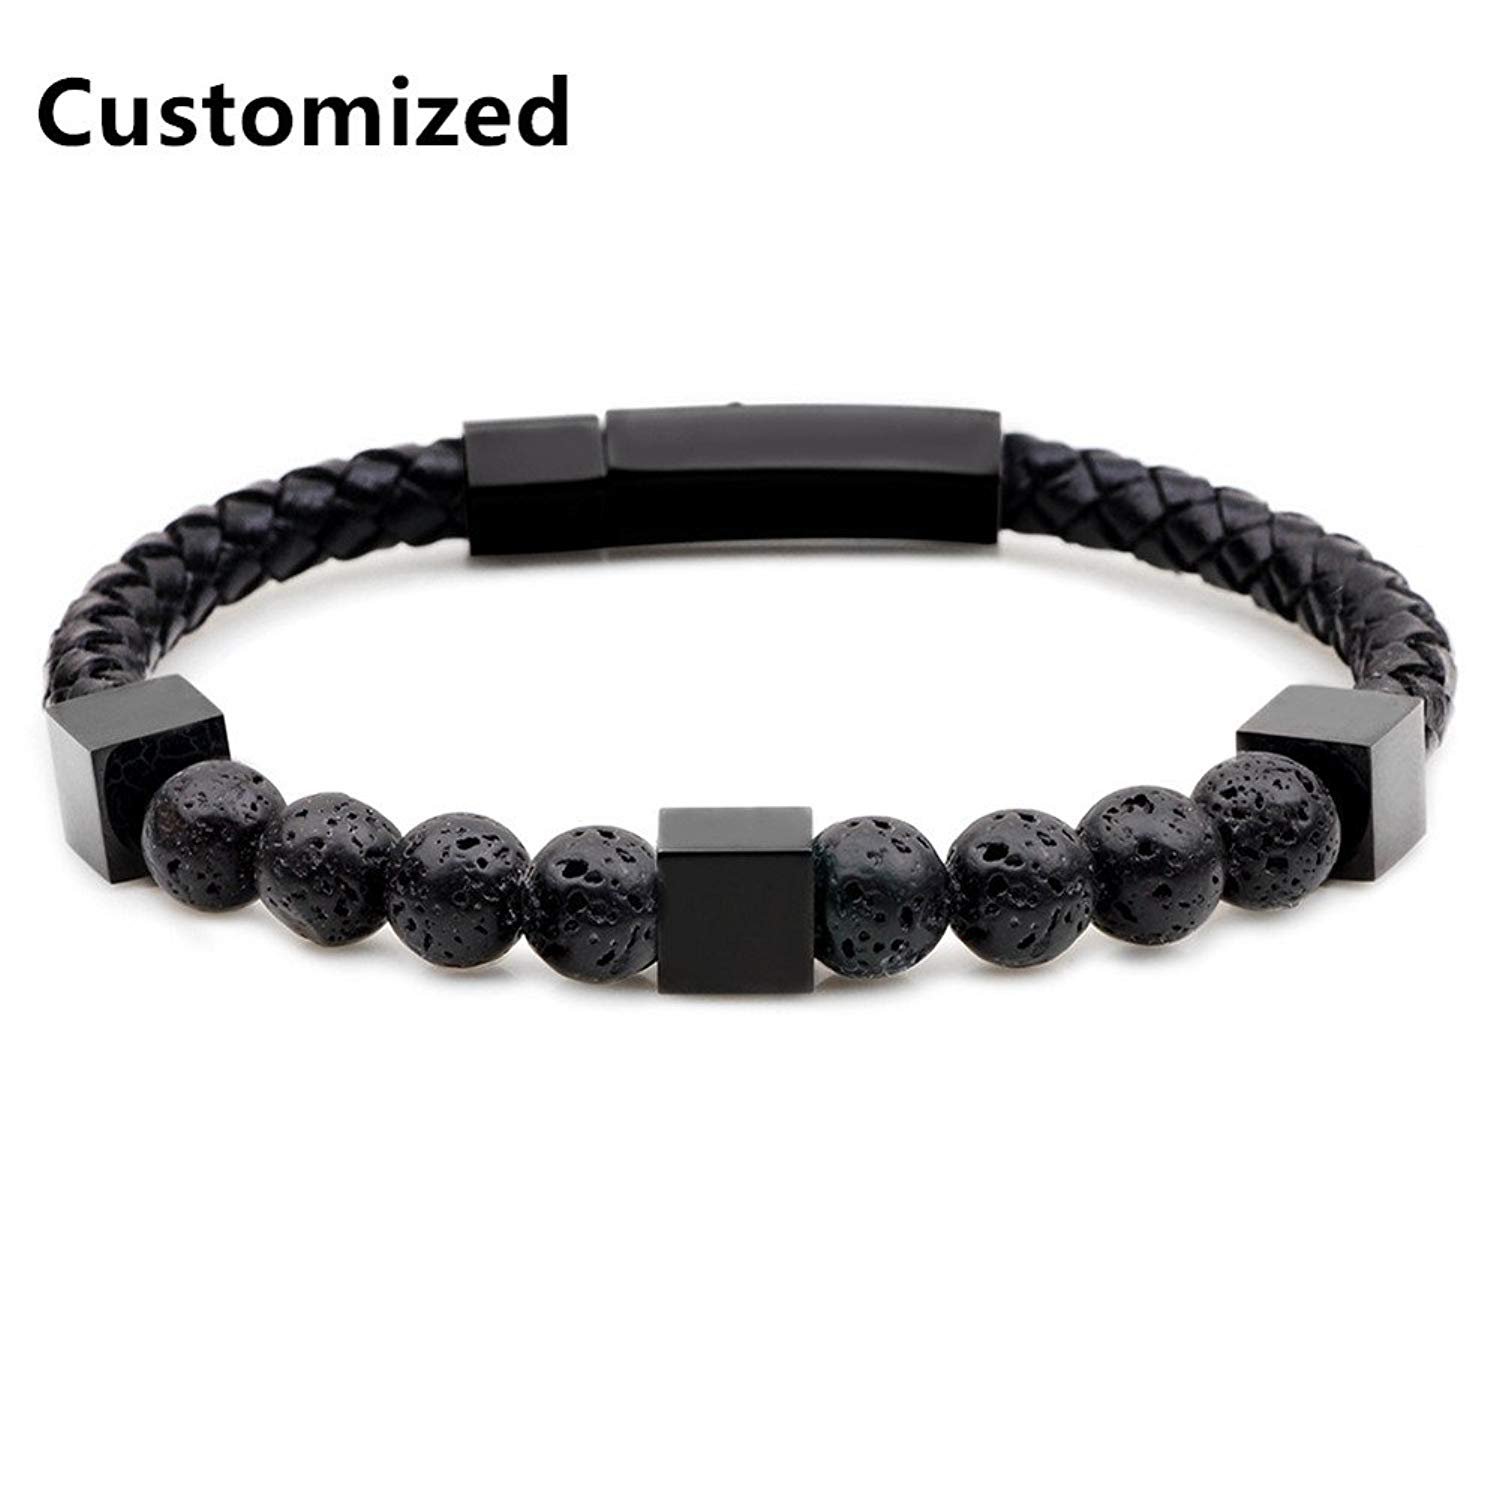 LF Mens Stainless Steel Handmade Genuine Leather Personalized Name Custom Matte Lava Rock Chakras Essential Oil Diffuser Bracelet for Boyfriend Husband Son BFF Gift,Free Engraving Customized